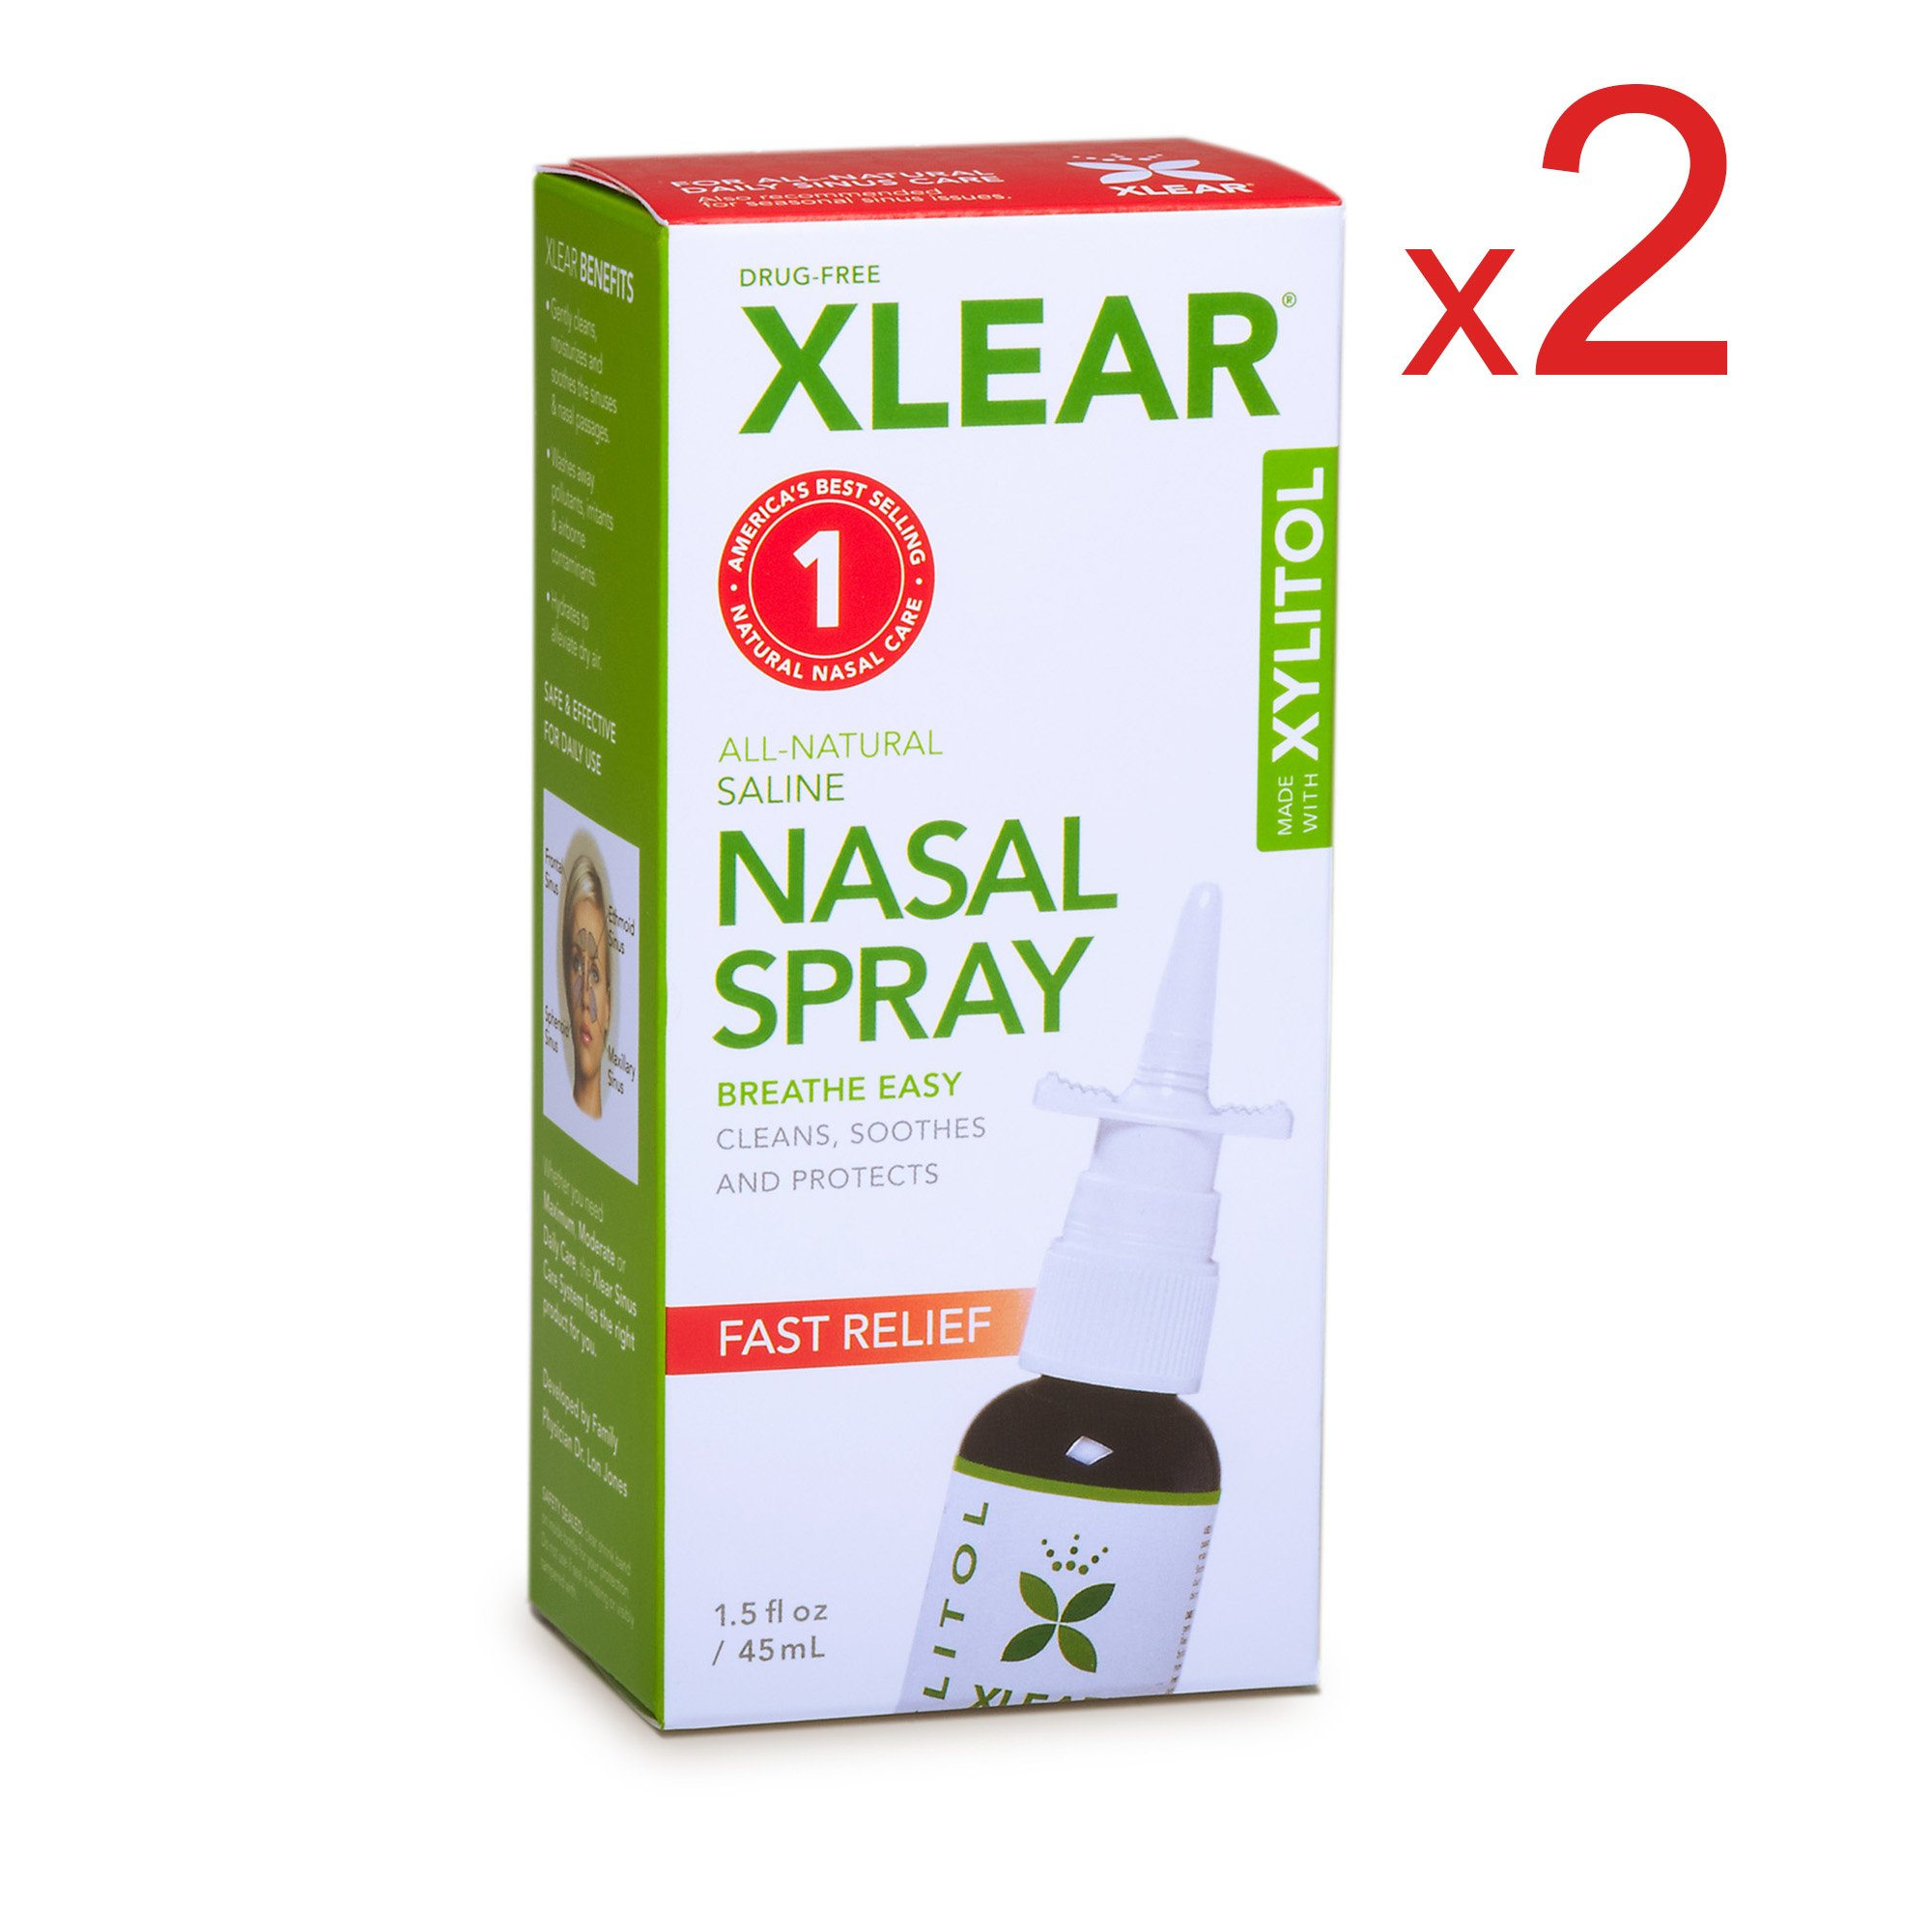 XLEAR Nasal Spray, 1.5 oz. (2 Pack) Natural Saline and Xylitol Moisturizing Sinus Care - Immediate and Drug Free Relief From Congestion, Allergies, and Dry Sinuses